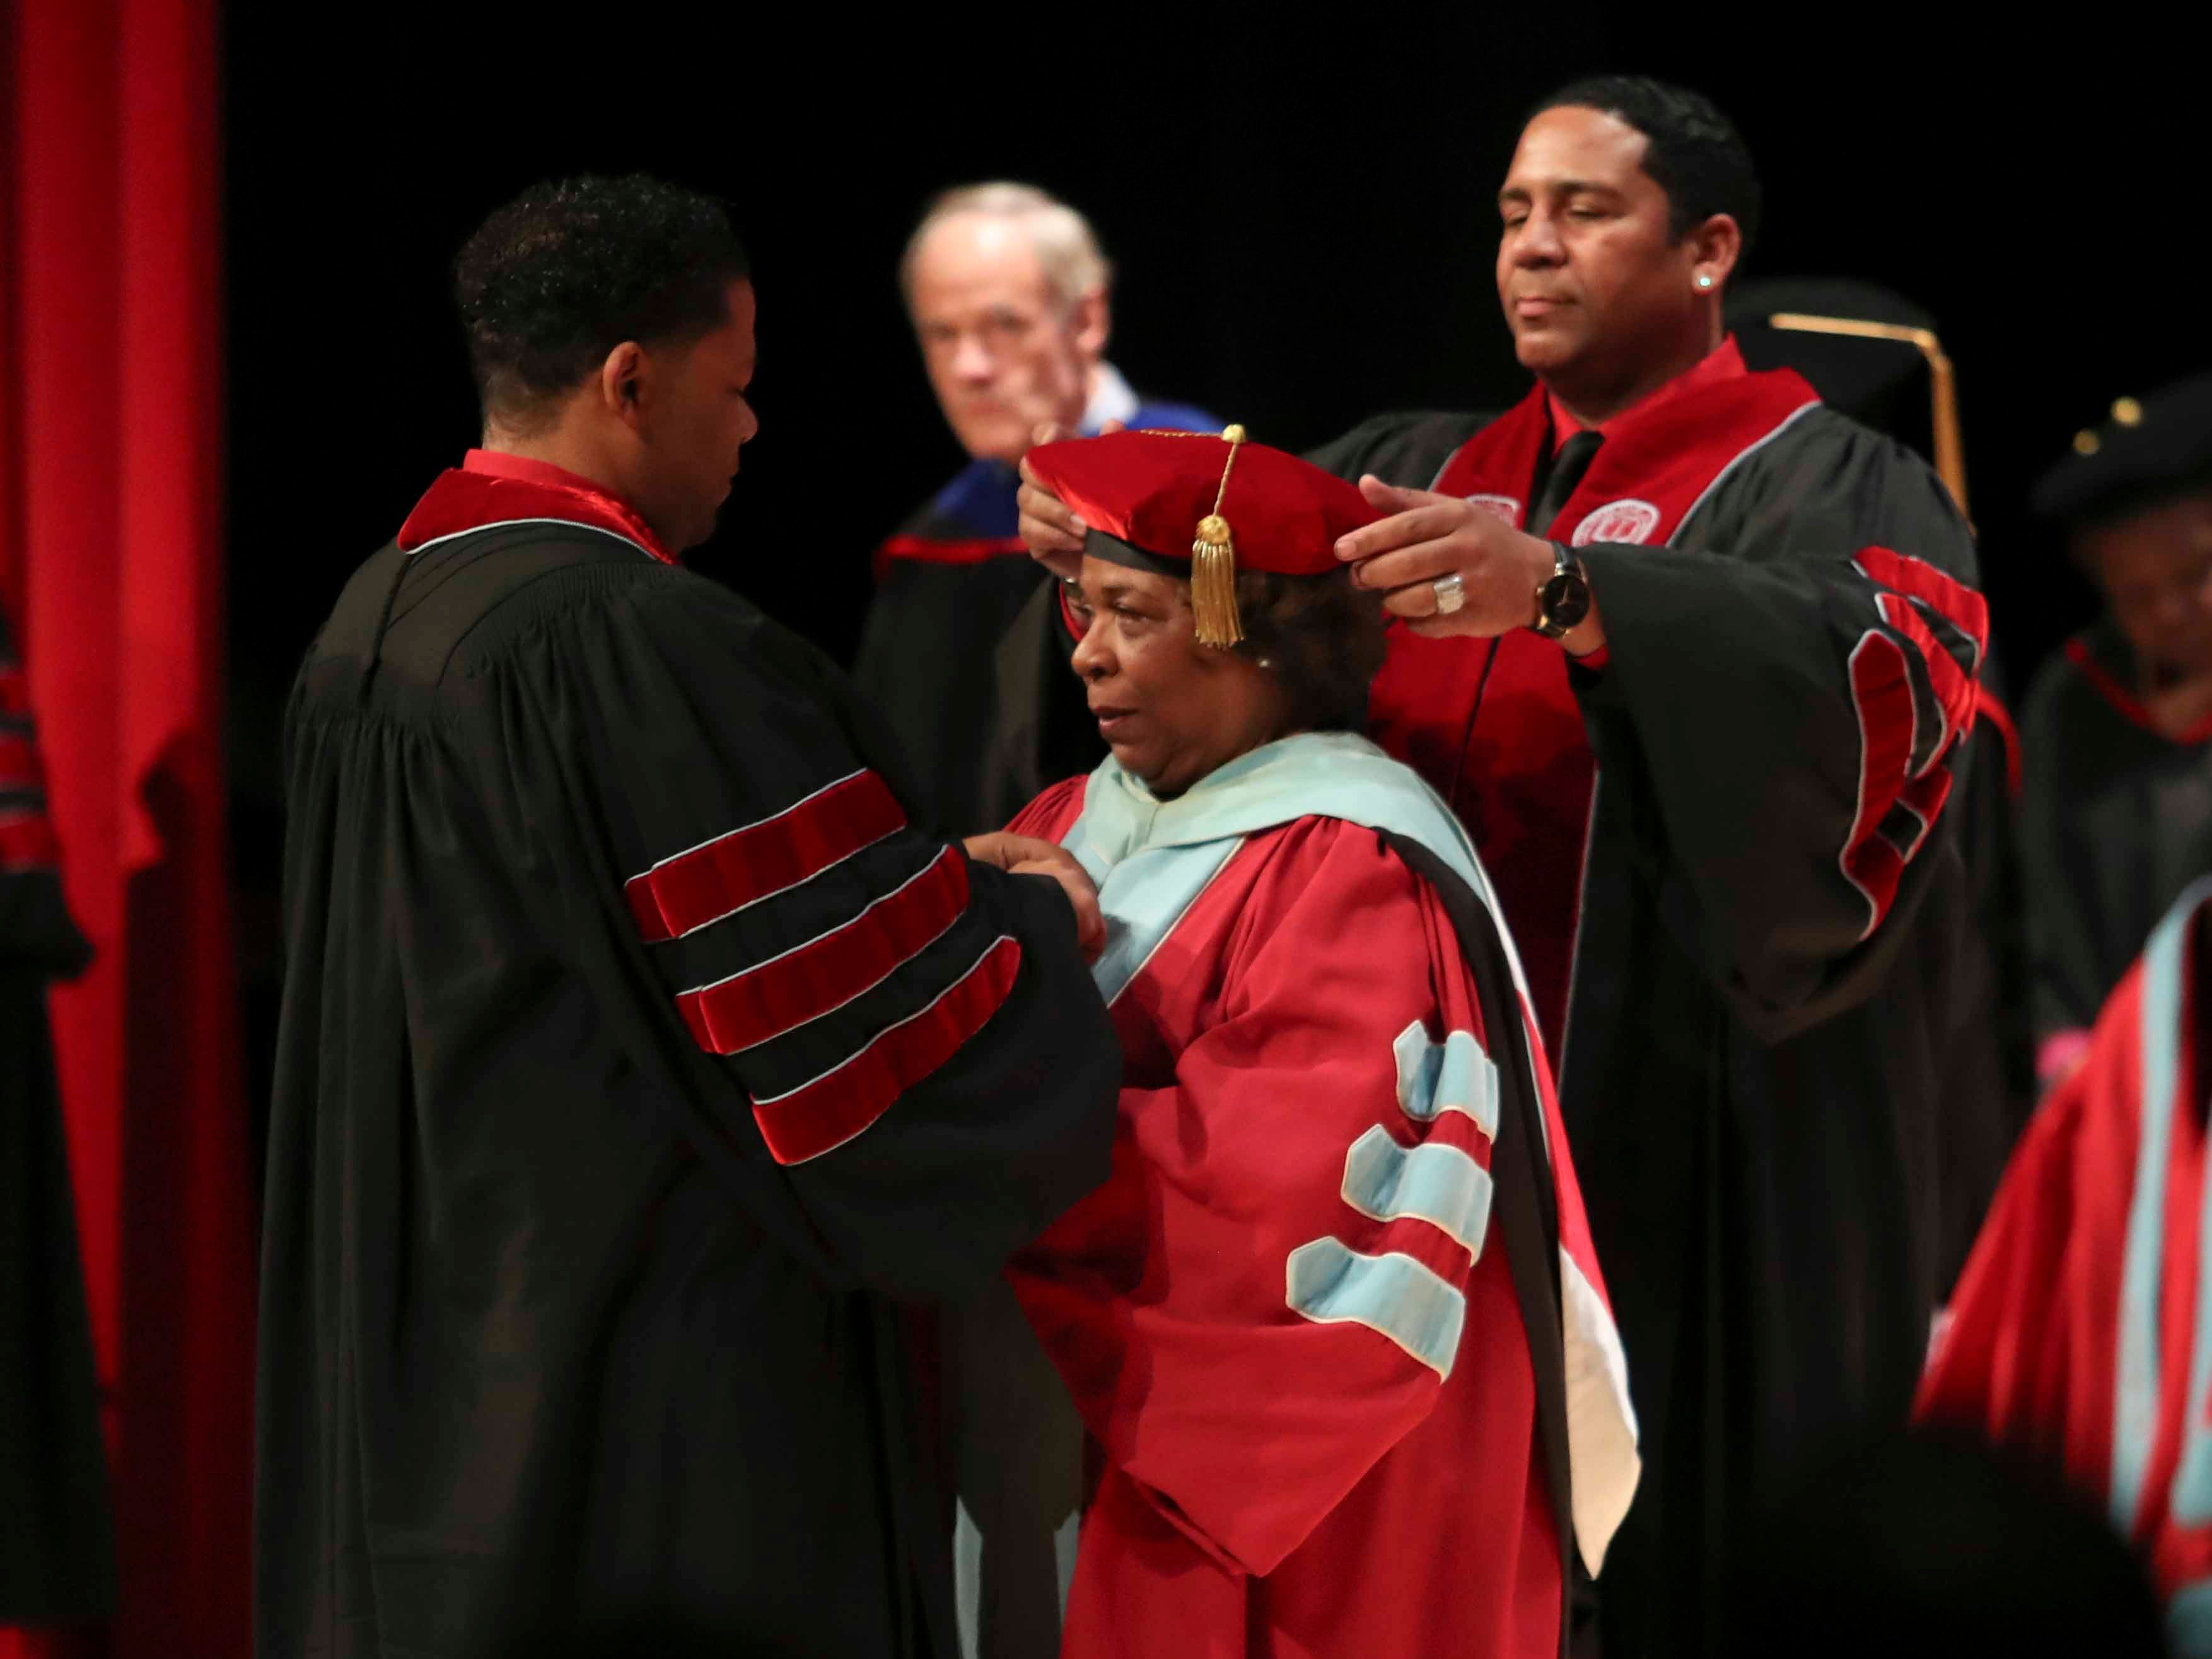 Wilma Mishoe's sons, Roy Sudler, Jr., and Travis Sudler, remove her academic regalia as she prepares to take on the president's hood and gown while being formally conferred with the presidency of Delaware State University in an investiture ceremony Saturday at the Dover campus. Mishoe, a daughter of the university's 7th president, had been interim president since January before being named president in July. She is the university's 11th president and first woman president.